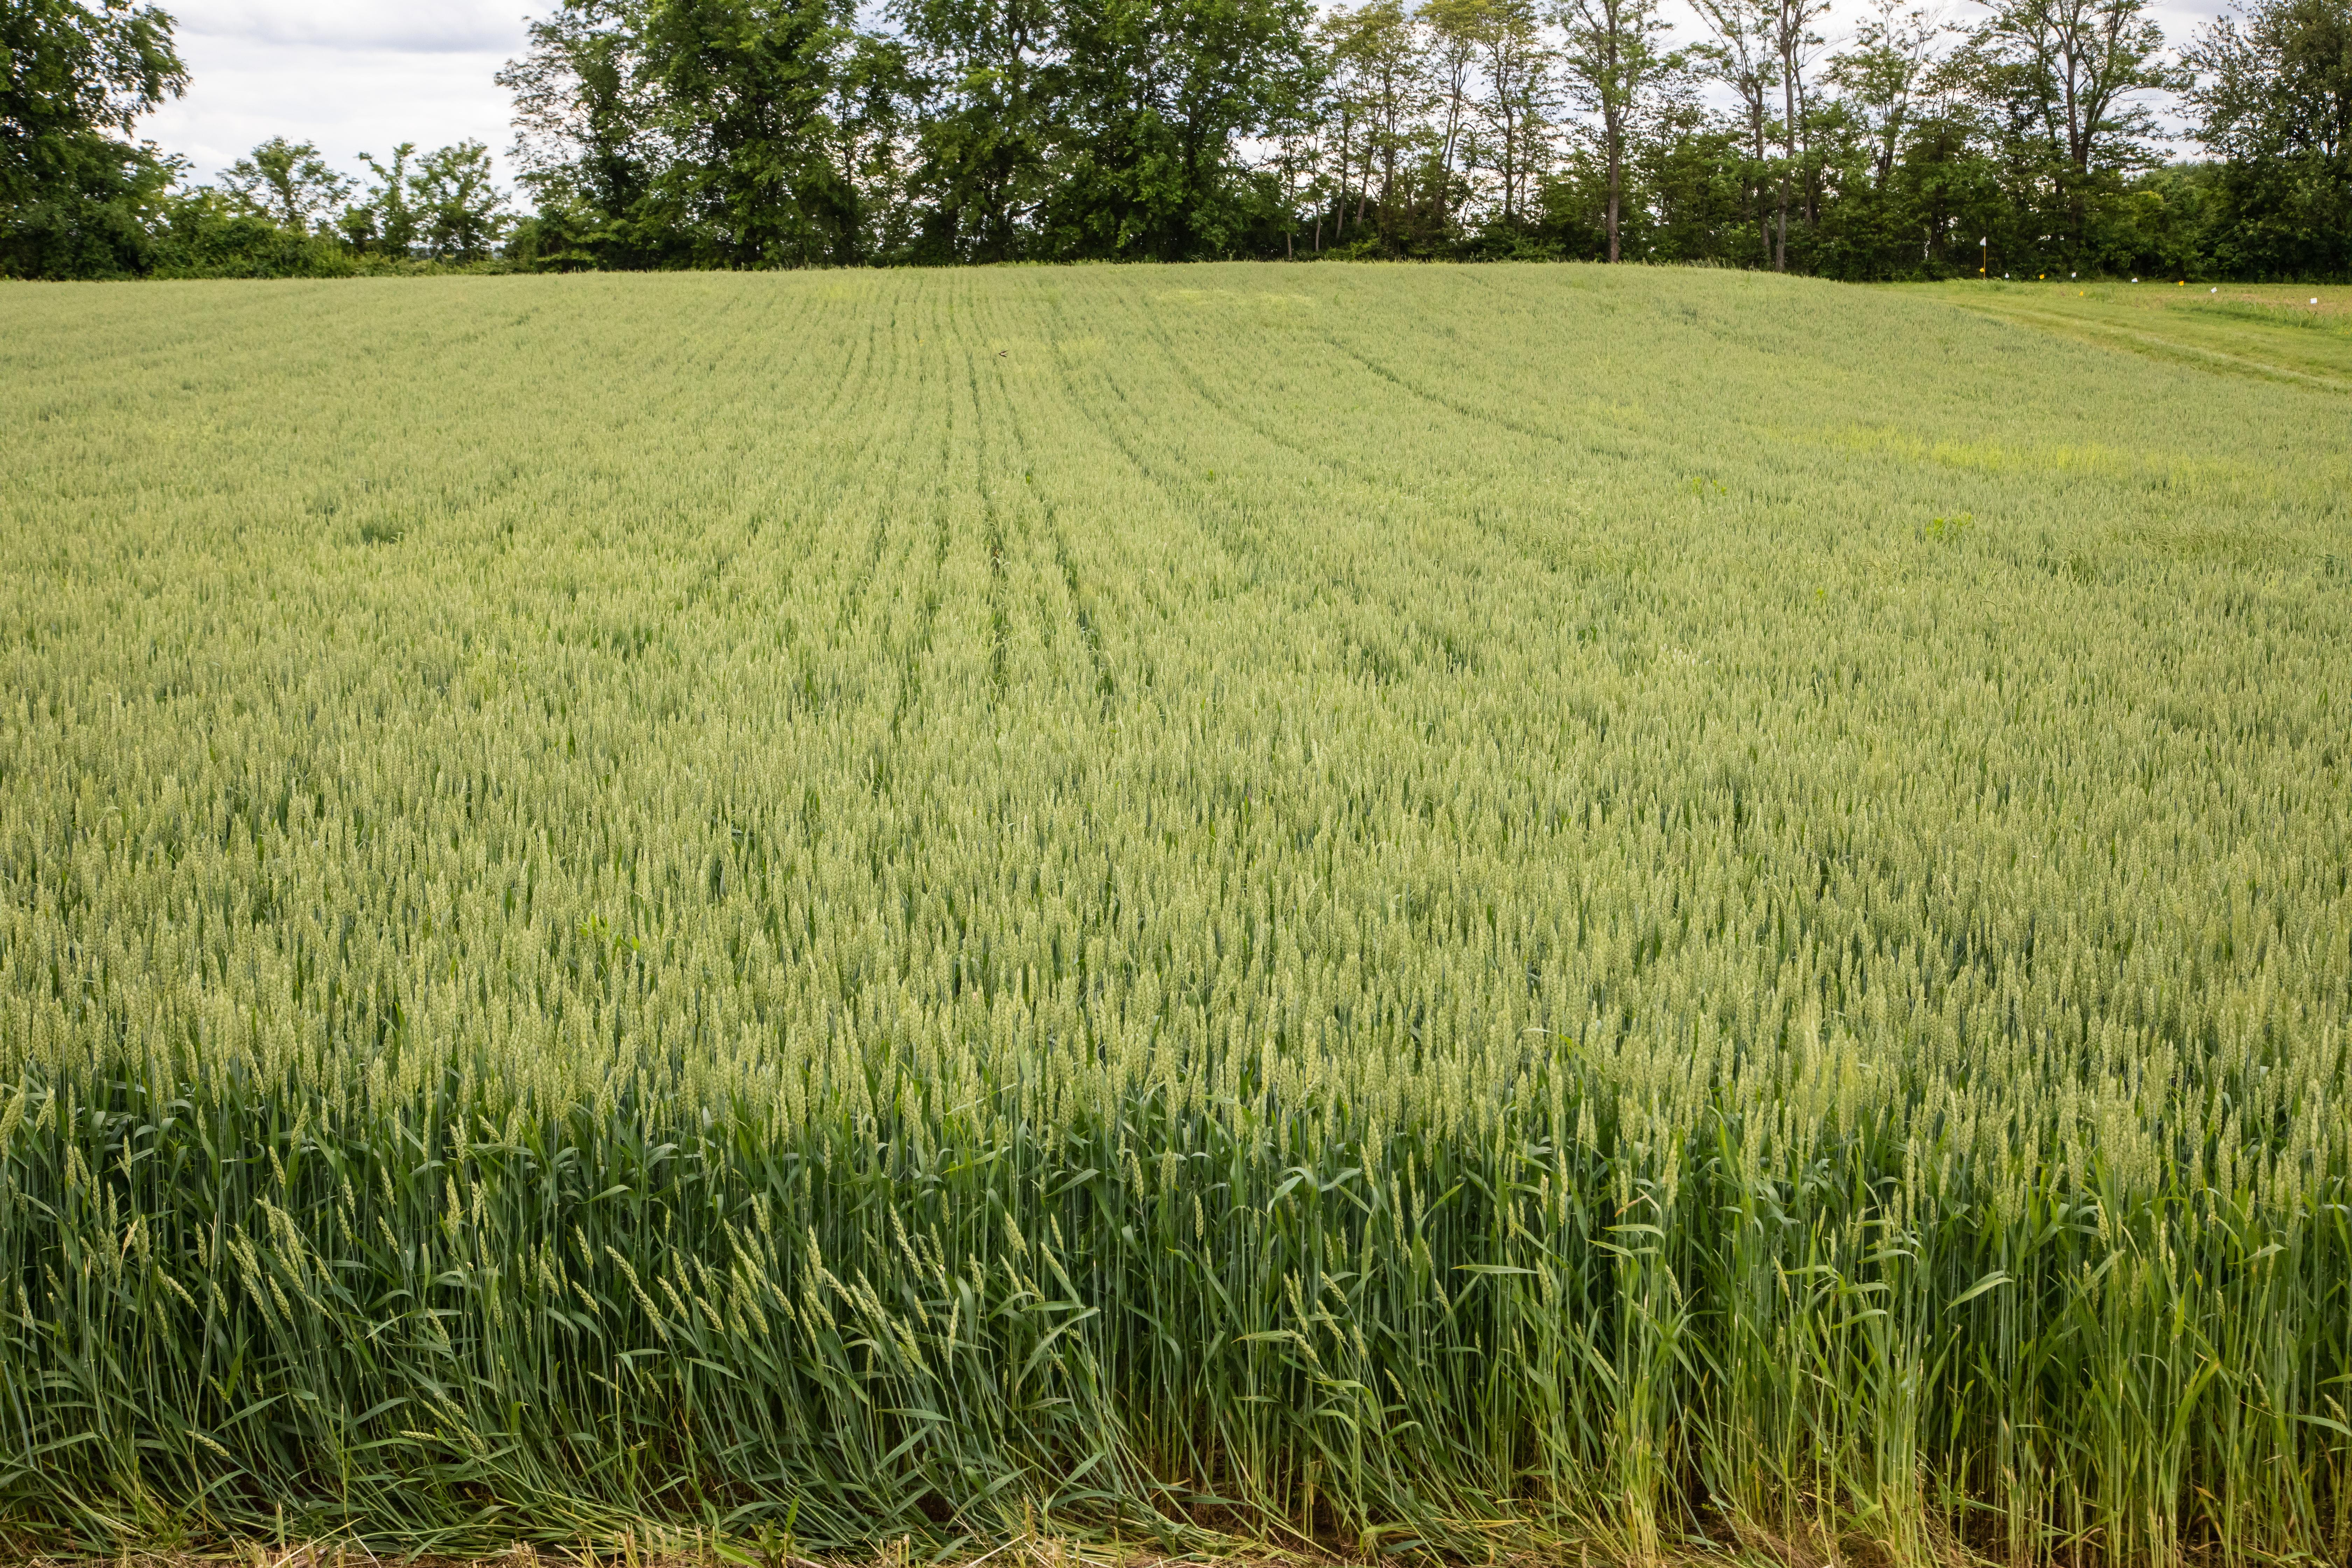 Winter wheat grows in plots at the UK Grain and Forage Center of Excellence last spring. Photo by Steve Patton, UK agricultural communications.